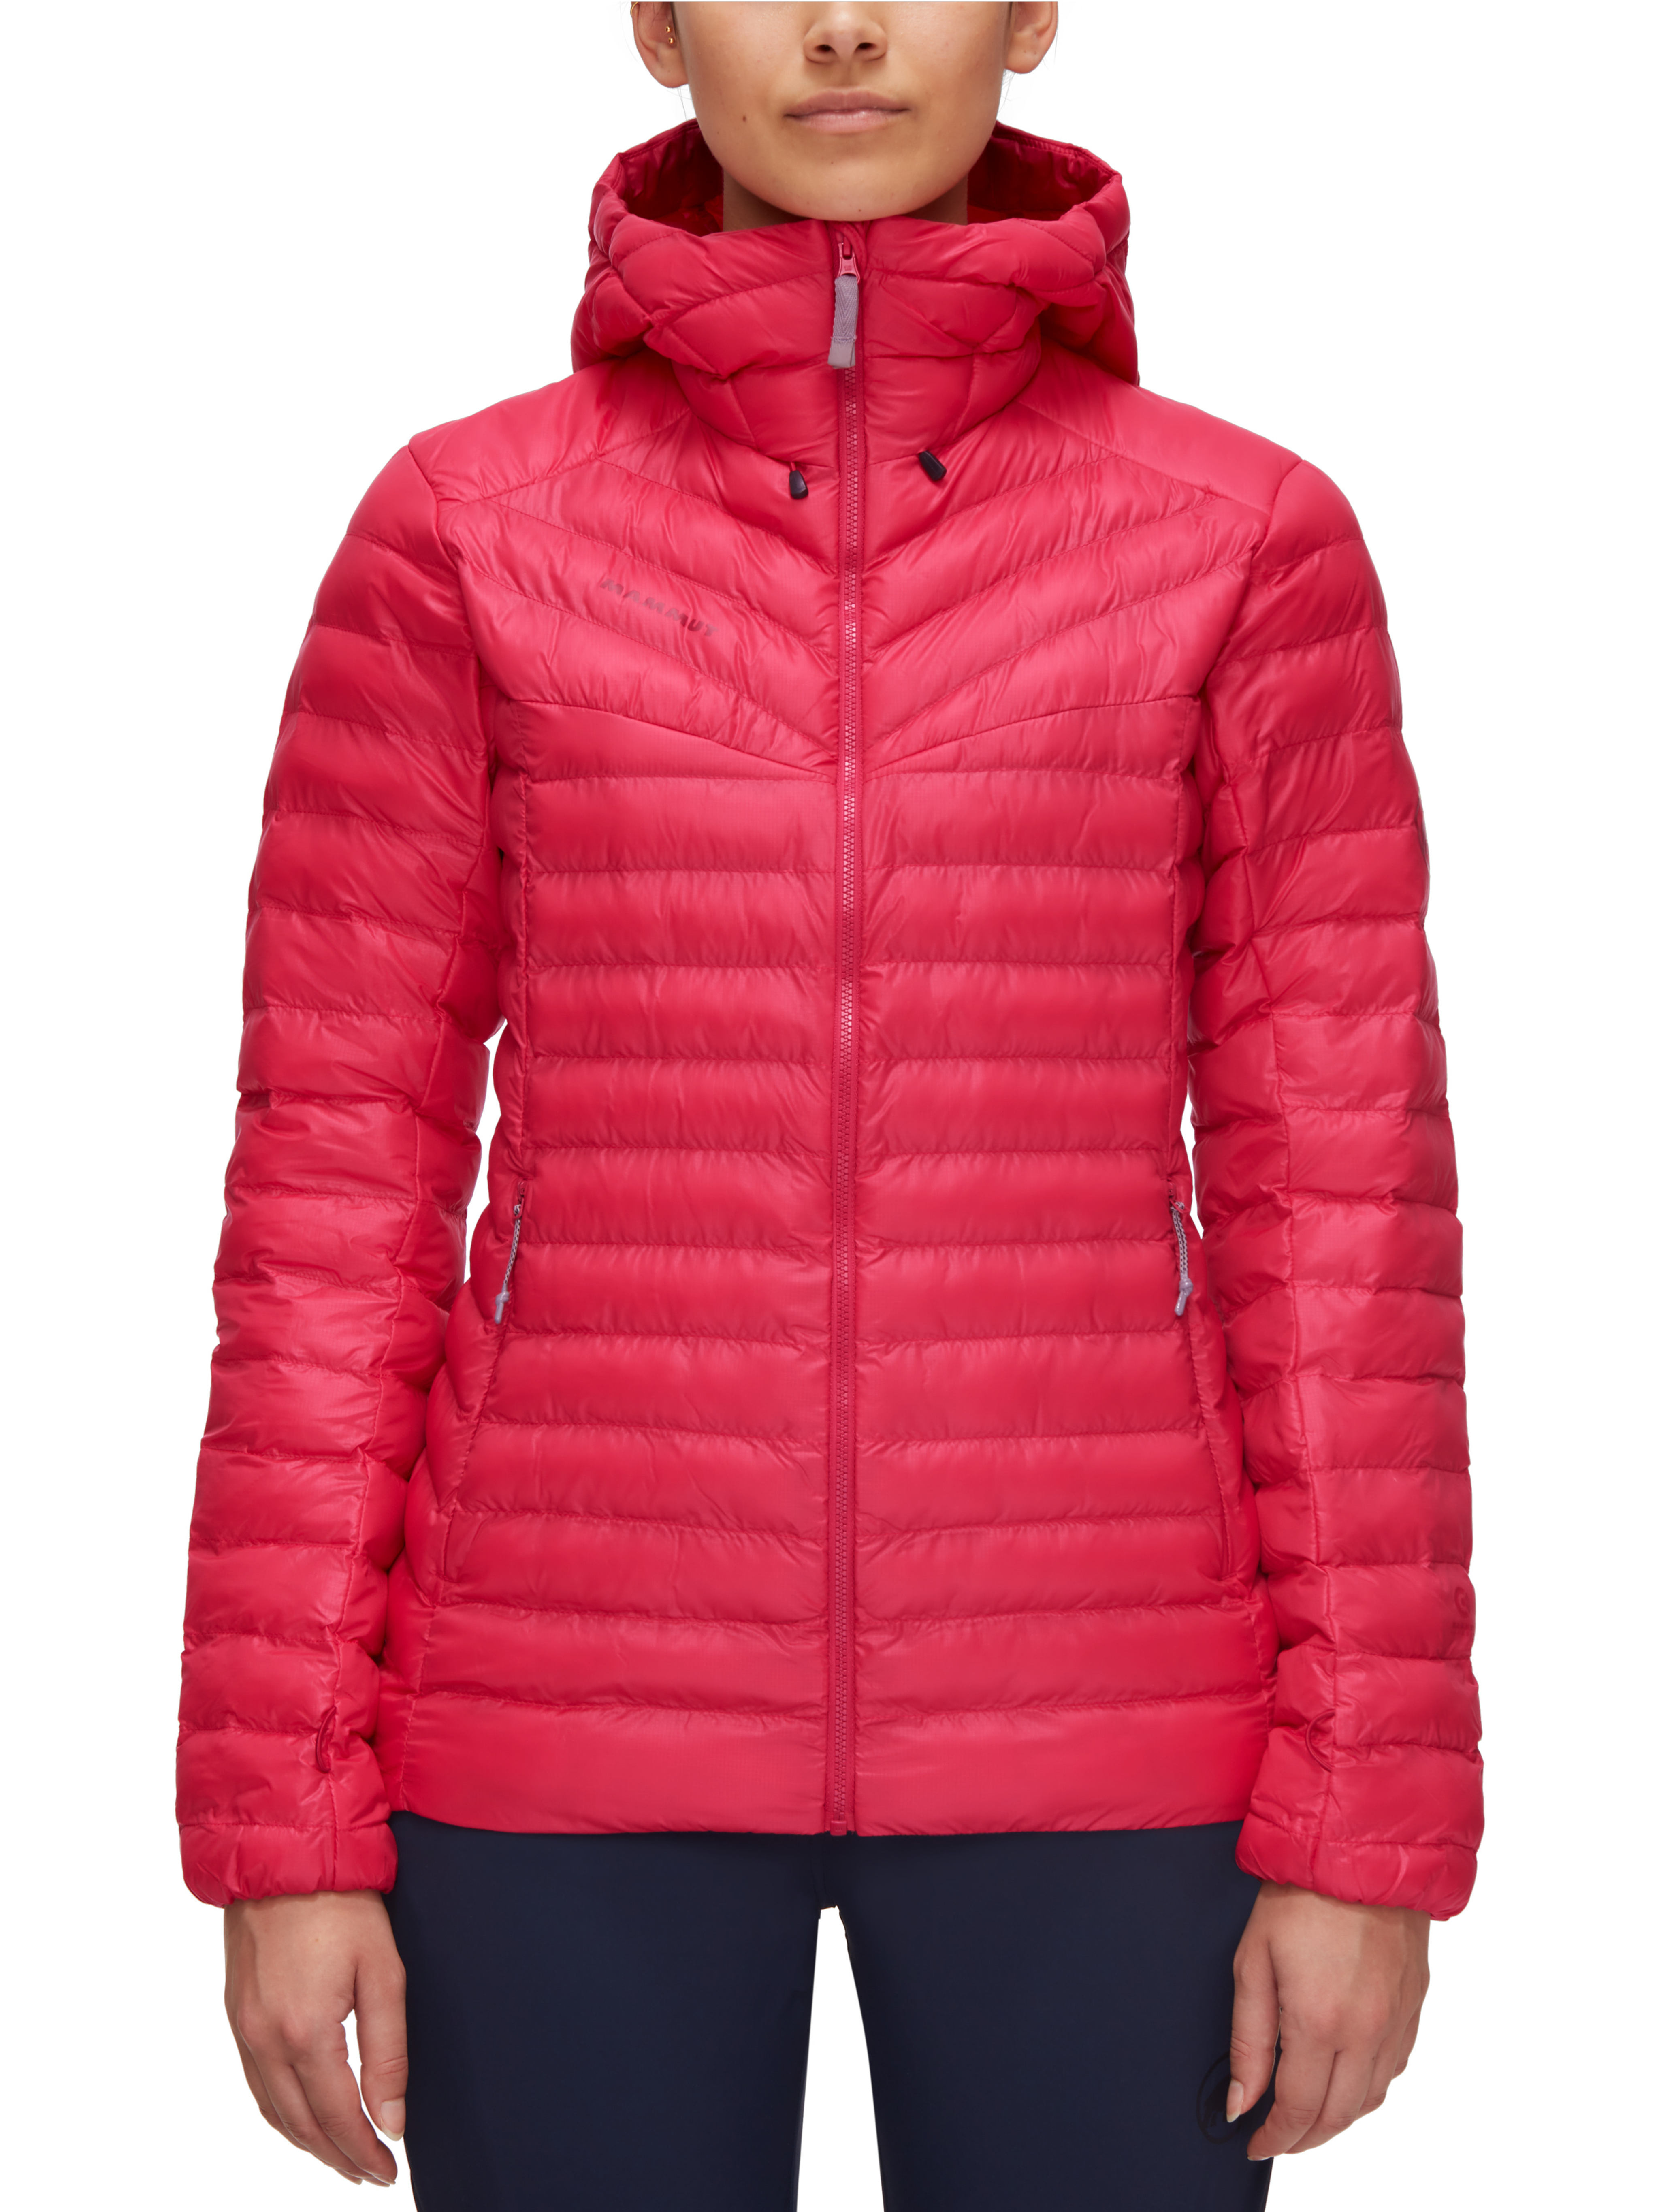 Albula IN Hooded Jacket Women product image